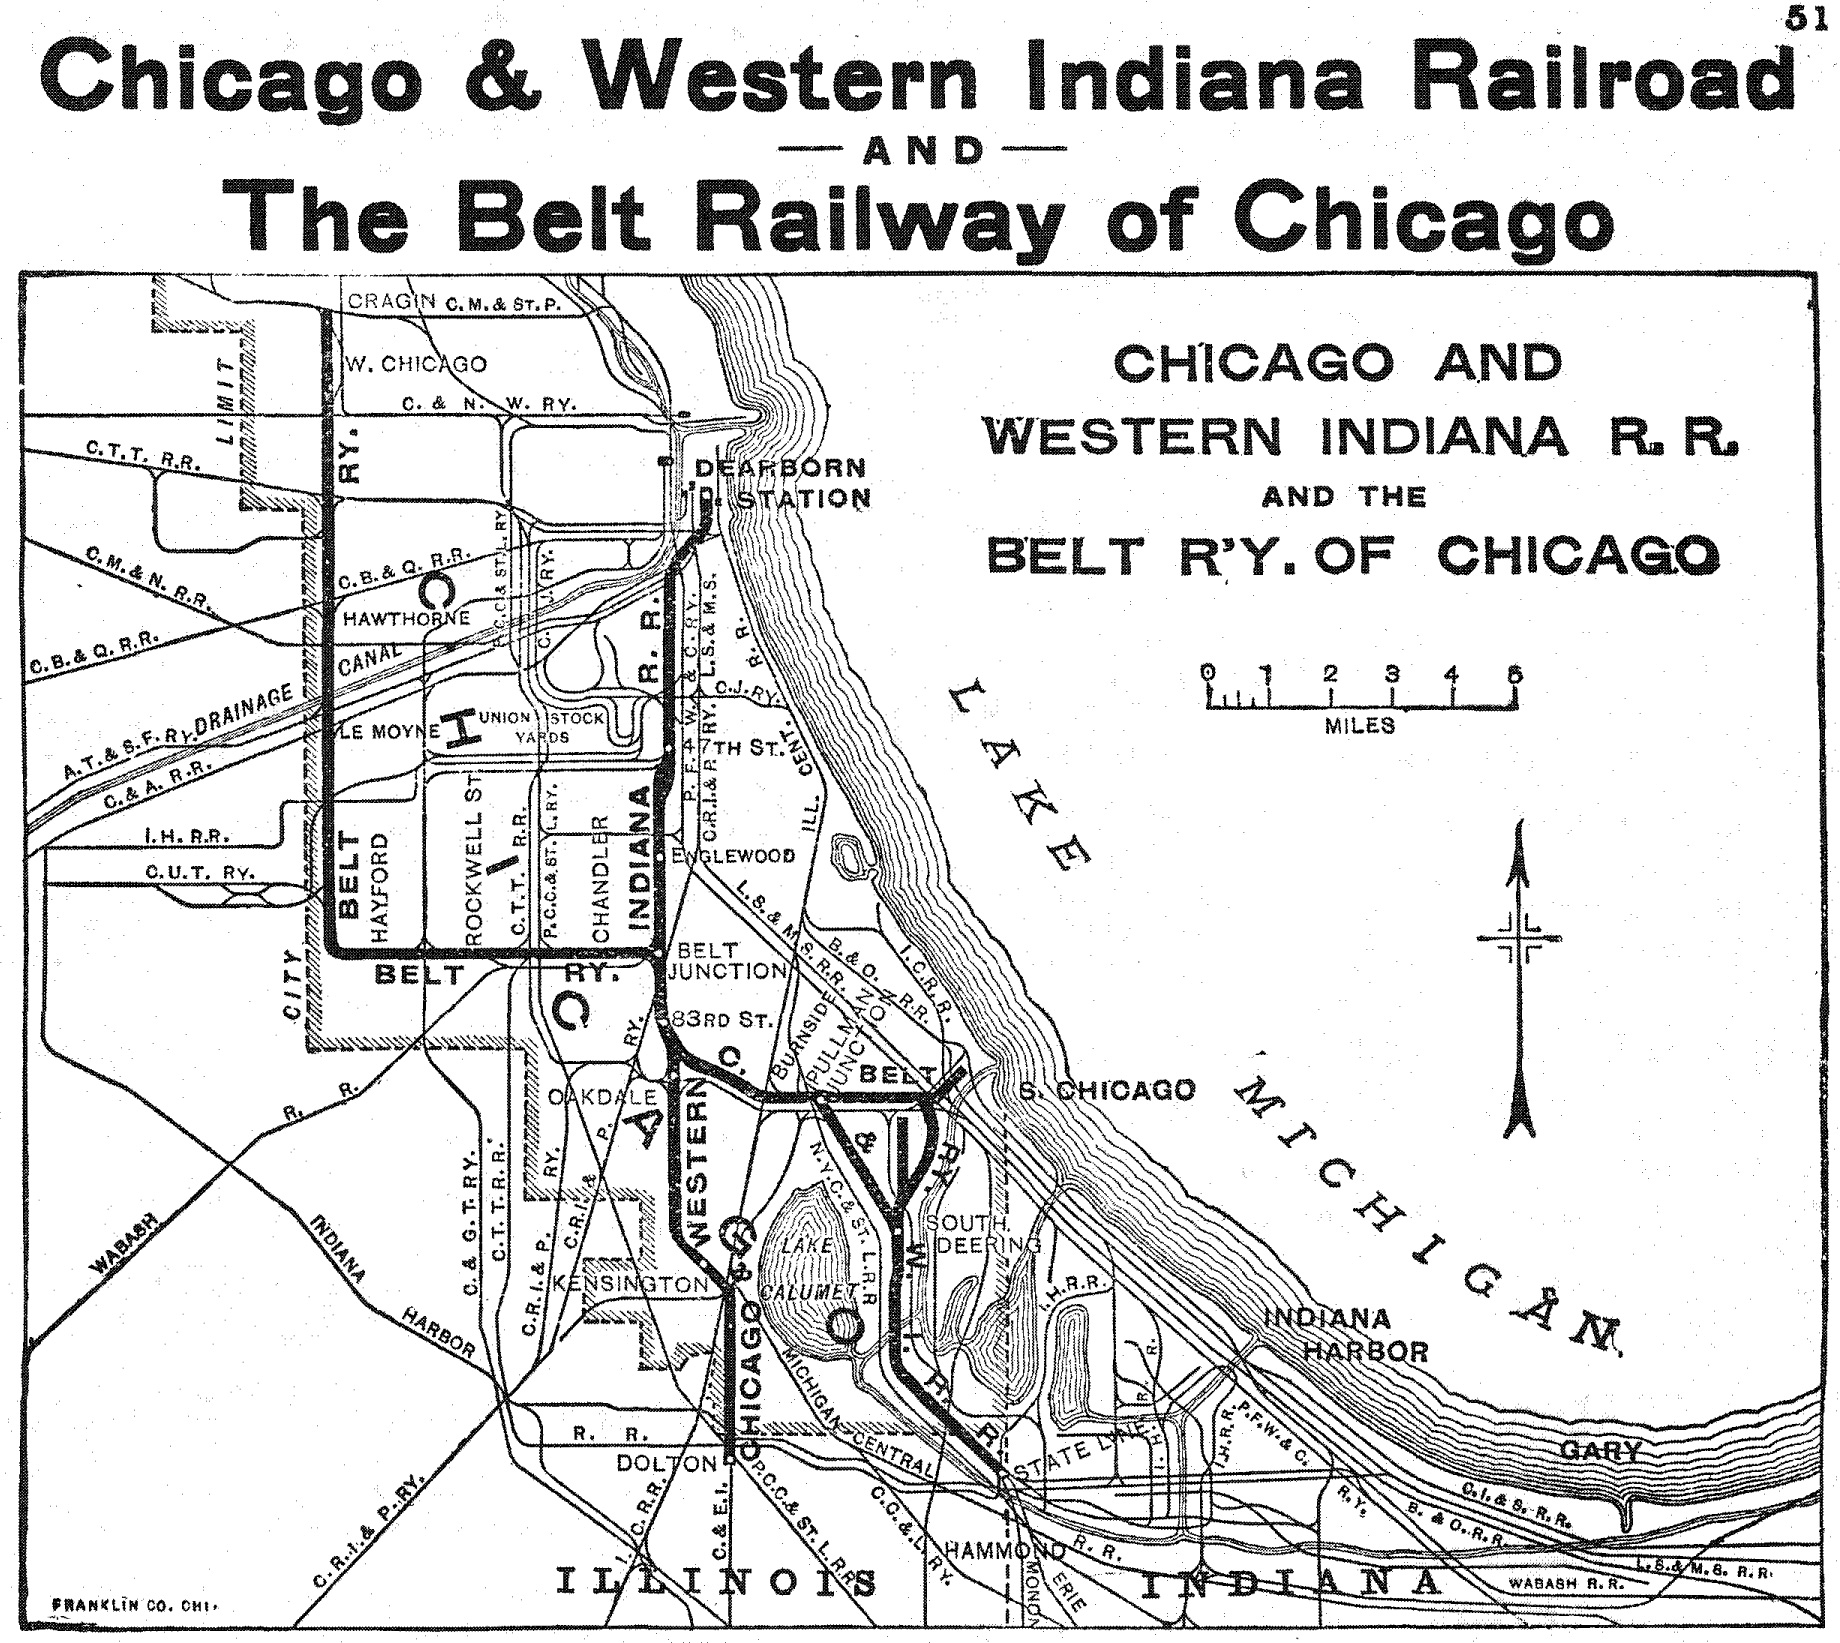 The Chicago And Western Indiana Railroad